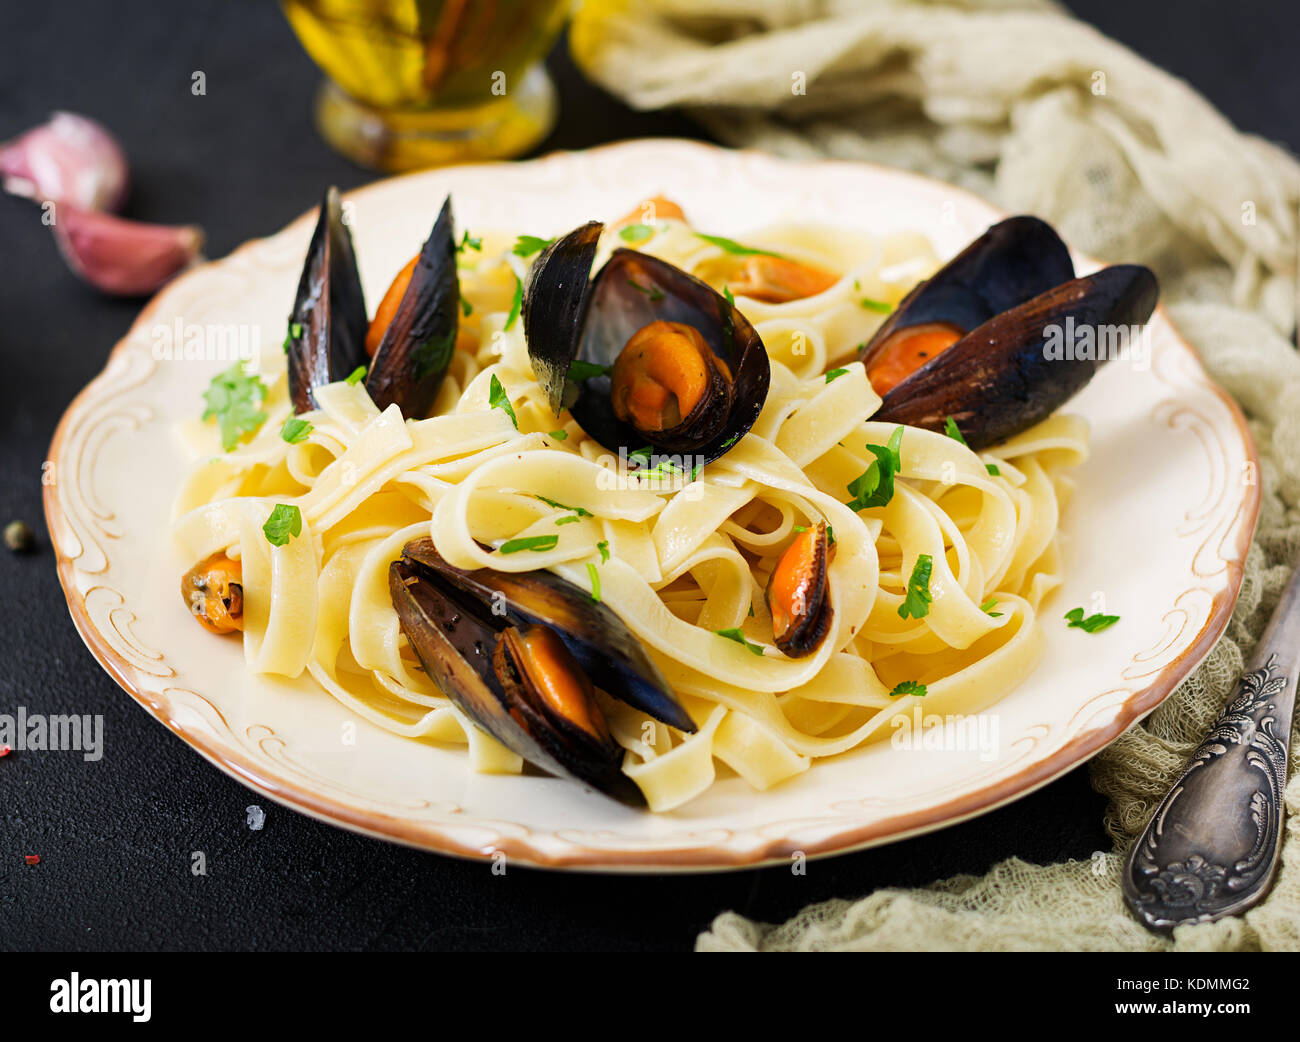 Seafood fettuccine pasta with mussels over black background. Mediterranean delicacy food. - Stock Image